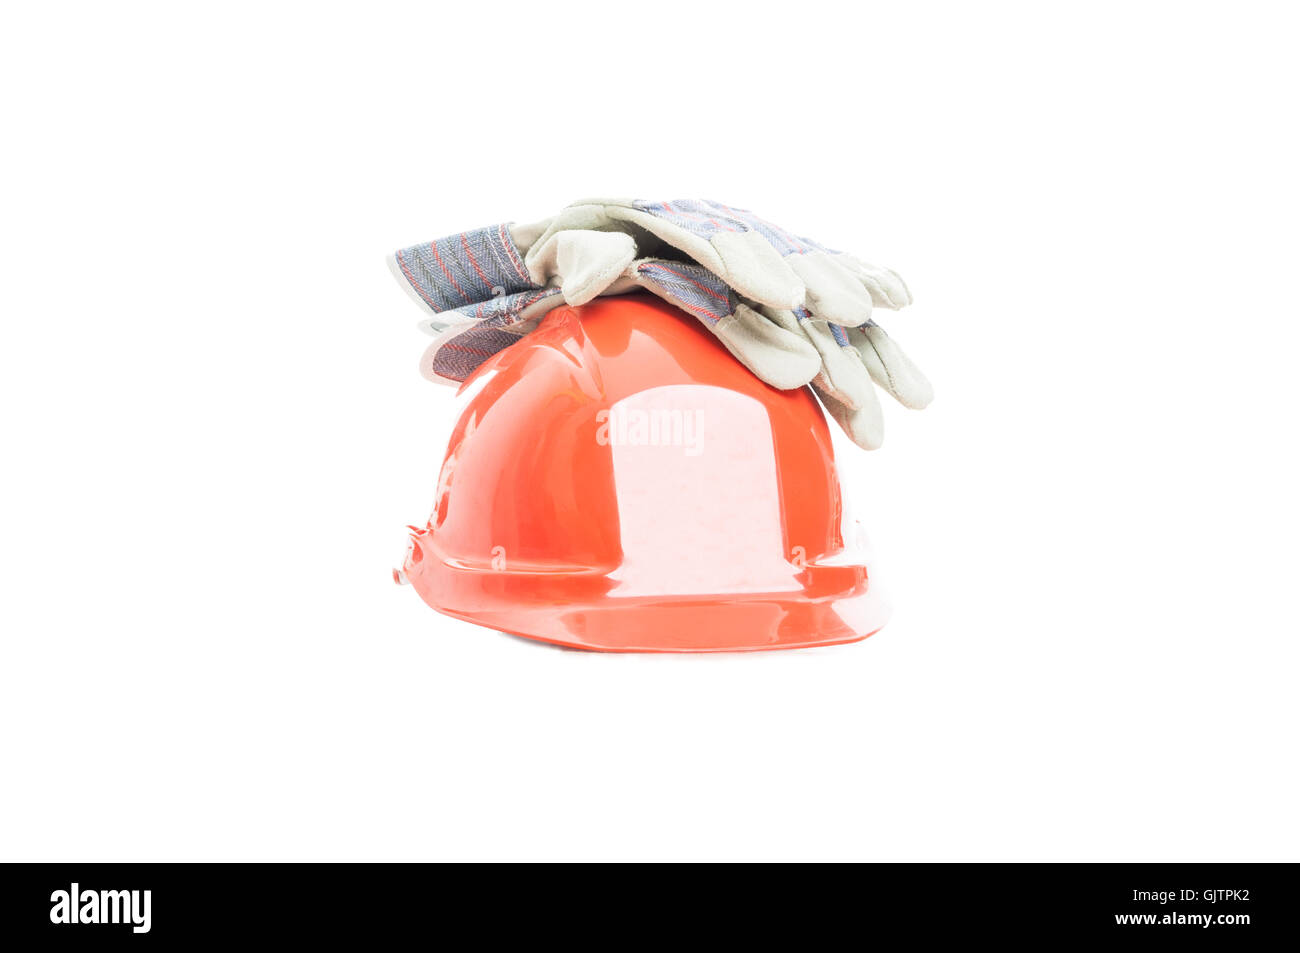 Safety gear kit with helmet and gloves for construction activity isolated on white background - Stock Image